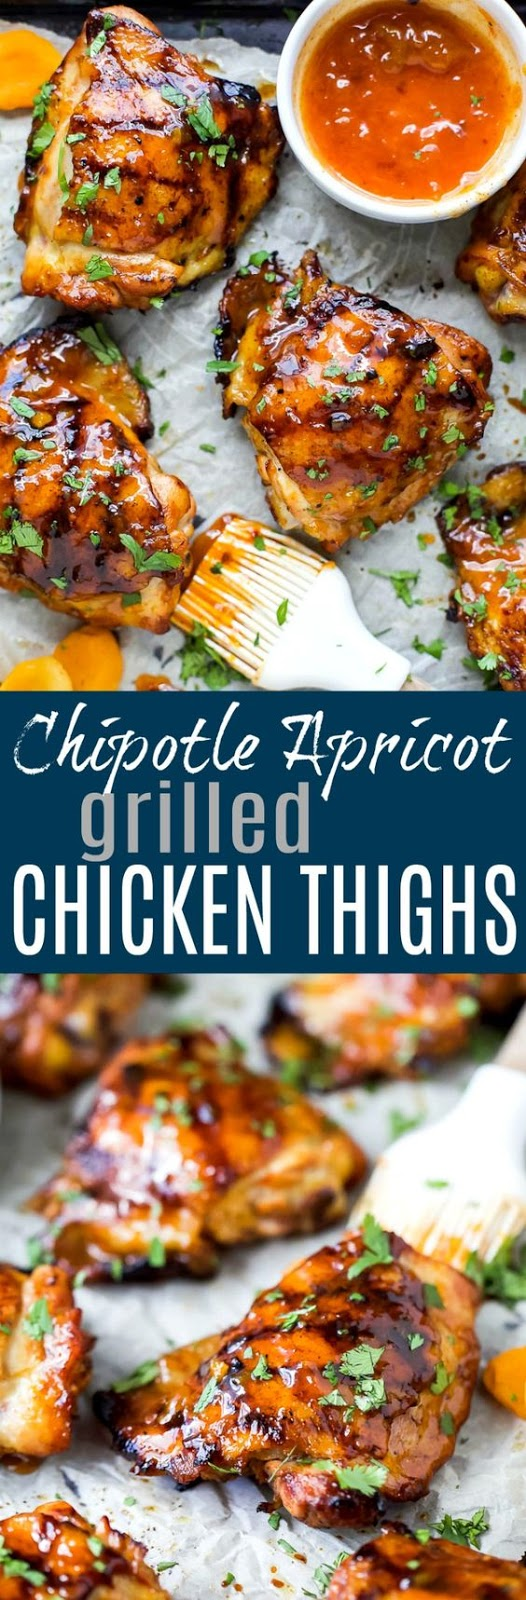 Chipotle Apricot Grilled Chicken Thighs